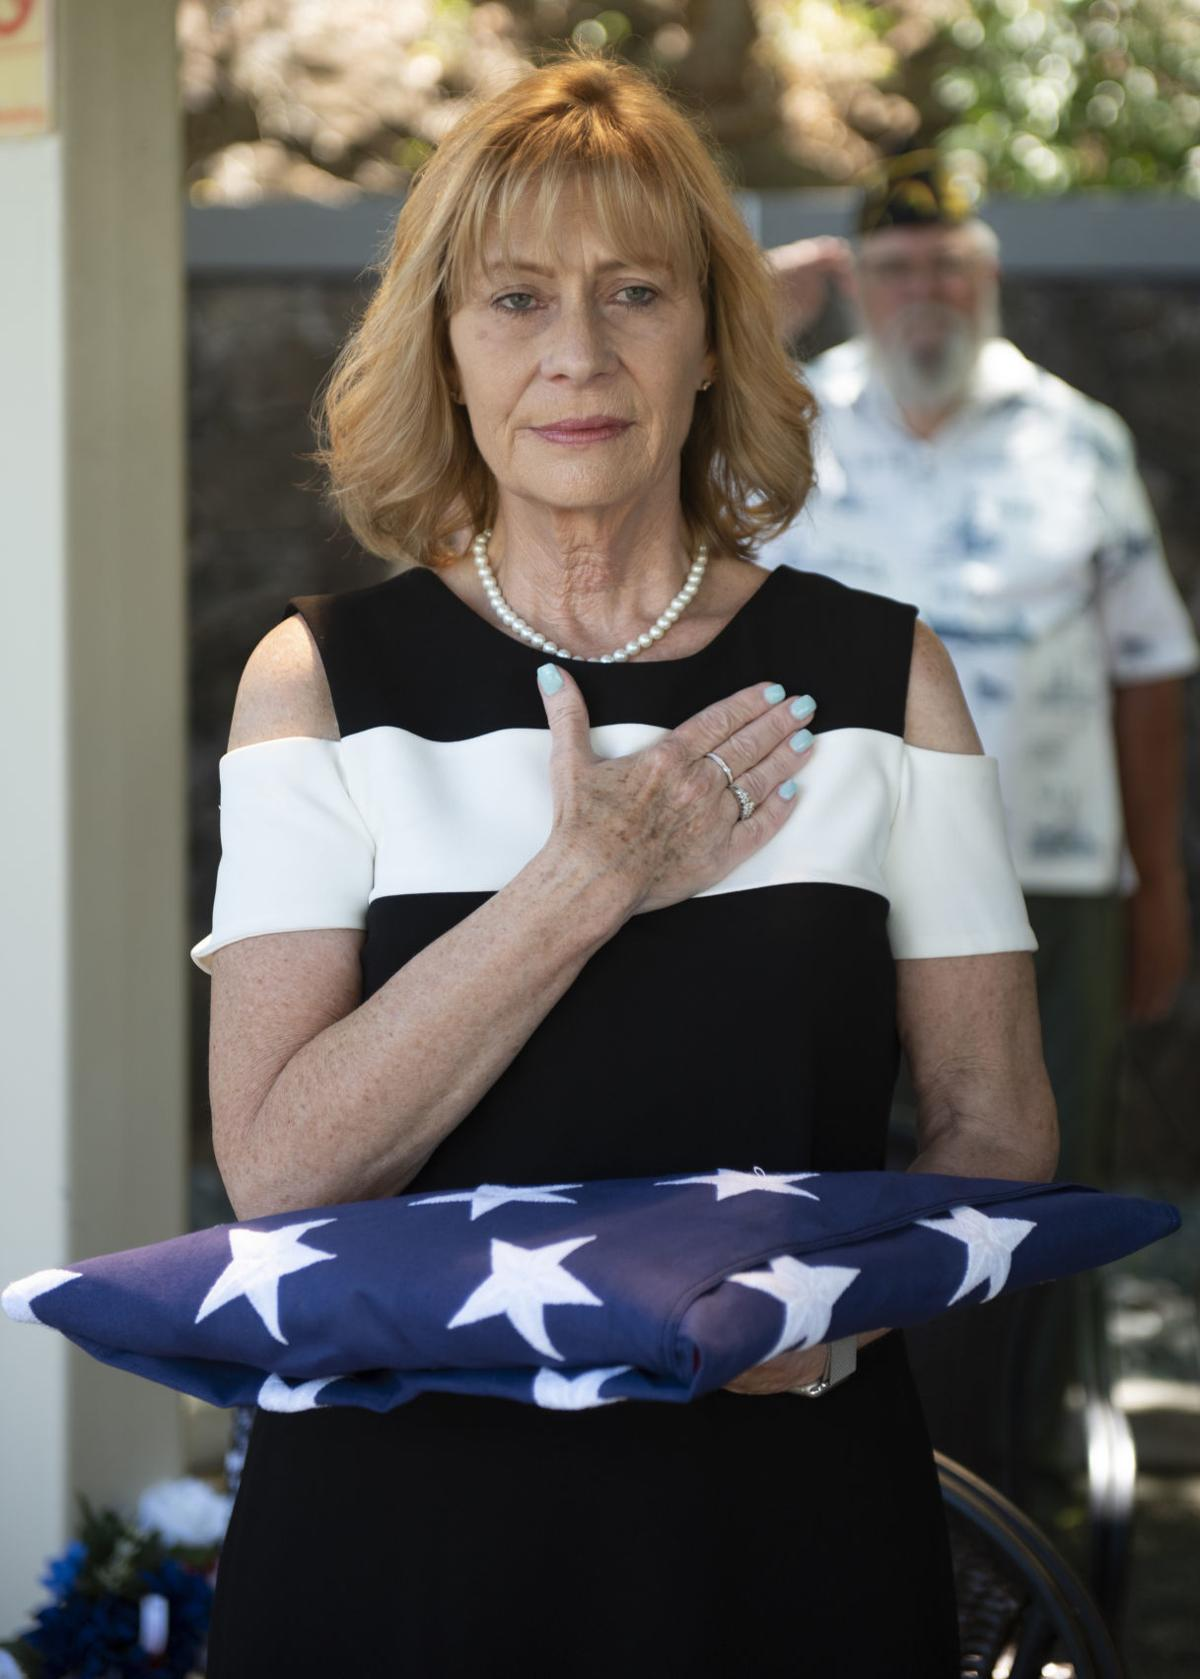 Niece pays respects to Nebraska sailor Grant Cook, who died at Pearl Harbor